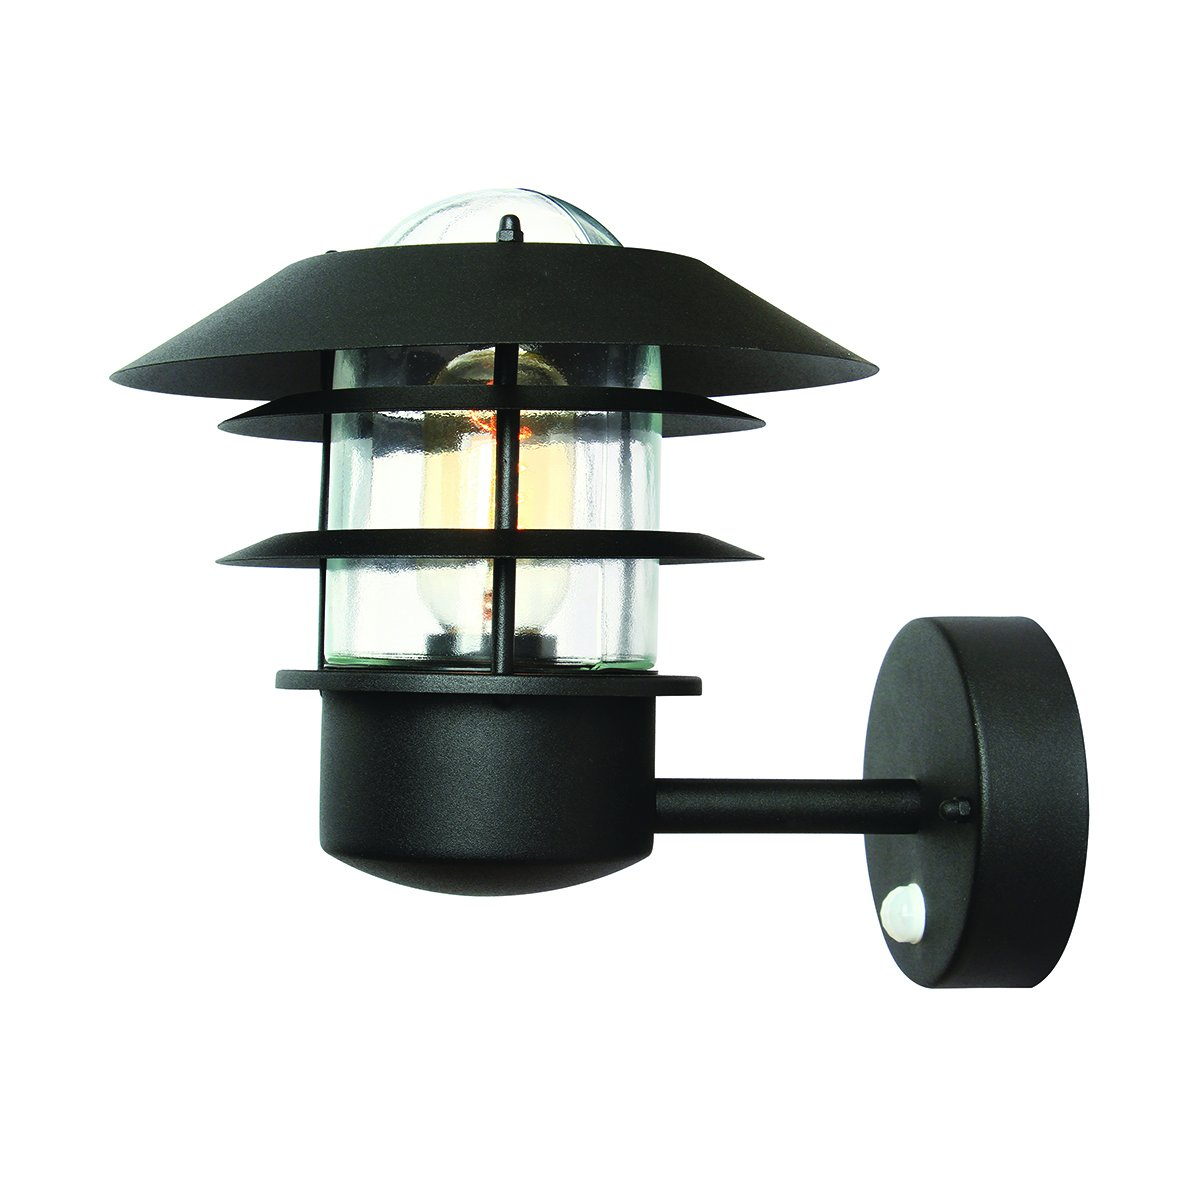 Elstead Helsingor PIR Stainless Steel Black finish wall light